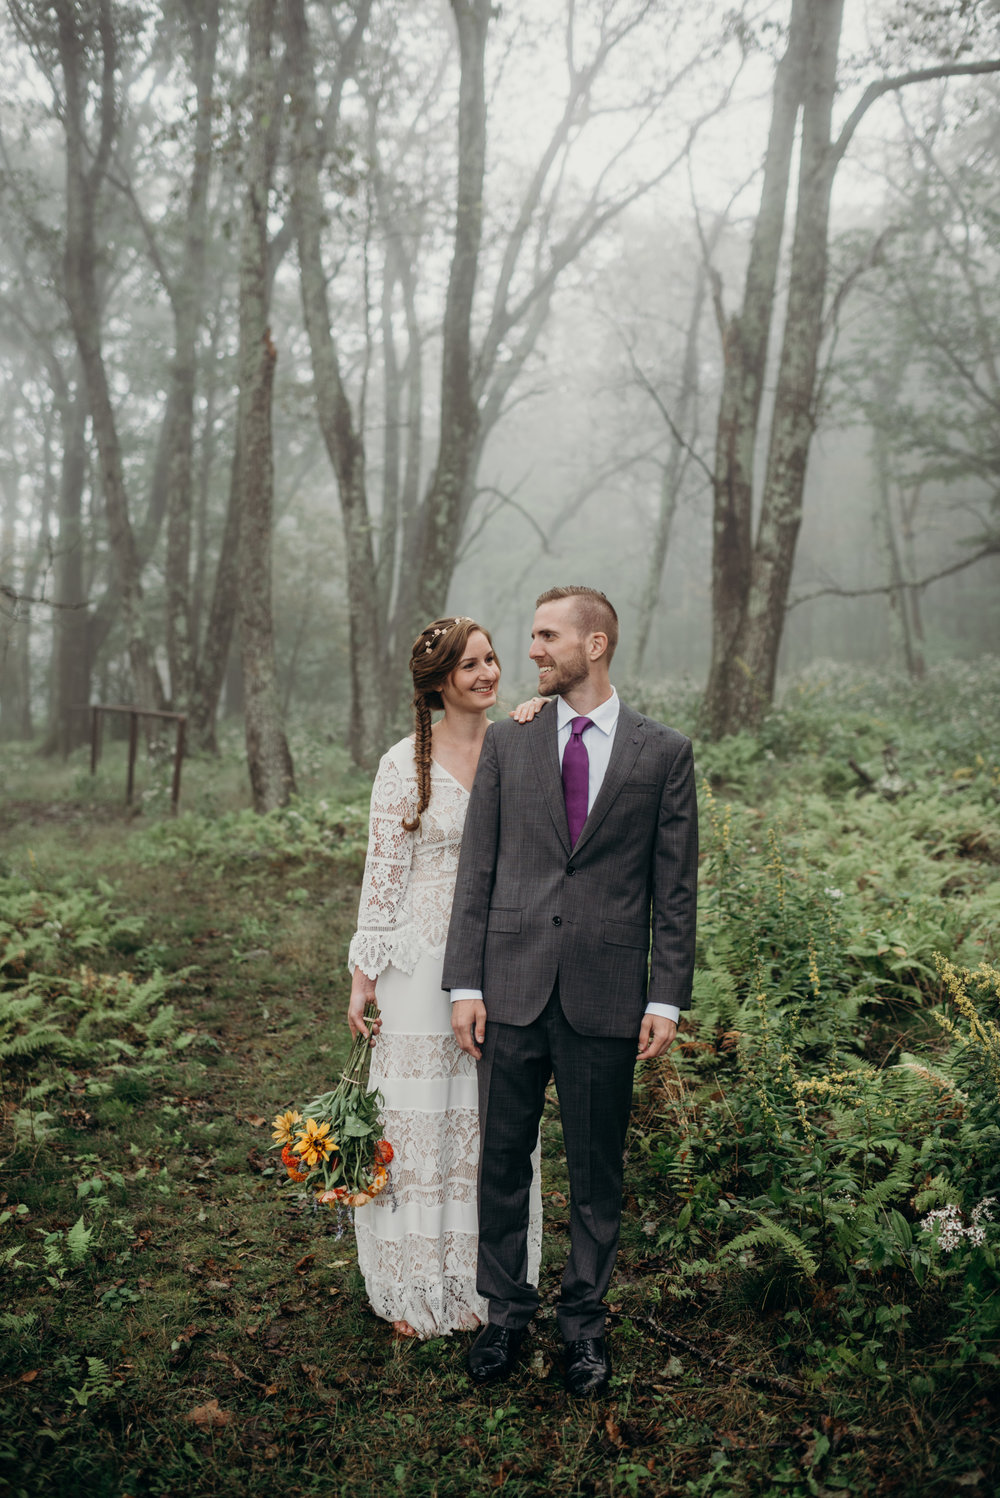 LAURA+ERIC+MARRIED+SKYLAND+SHENANDOAH-6921.jpg